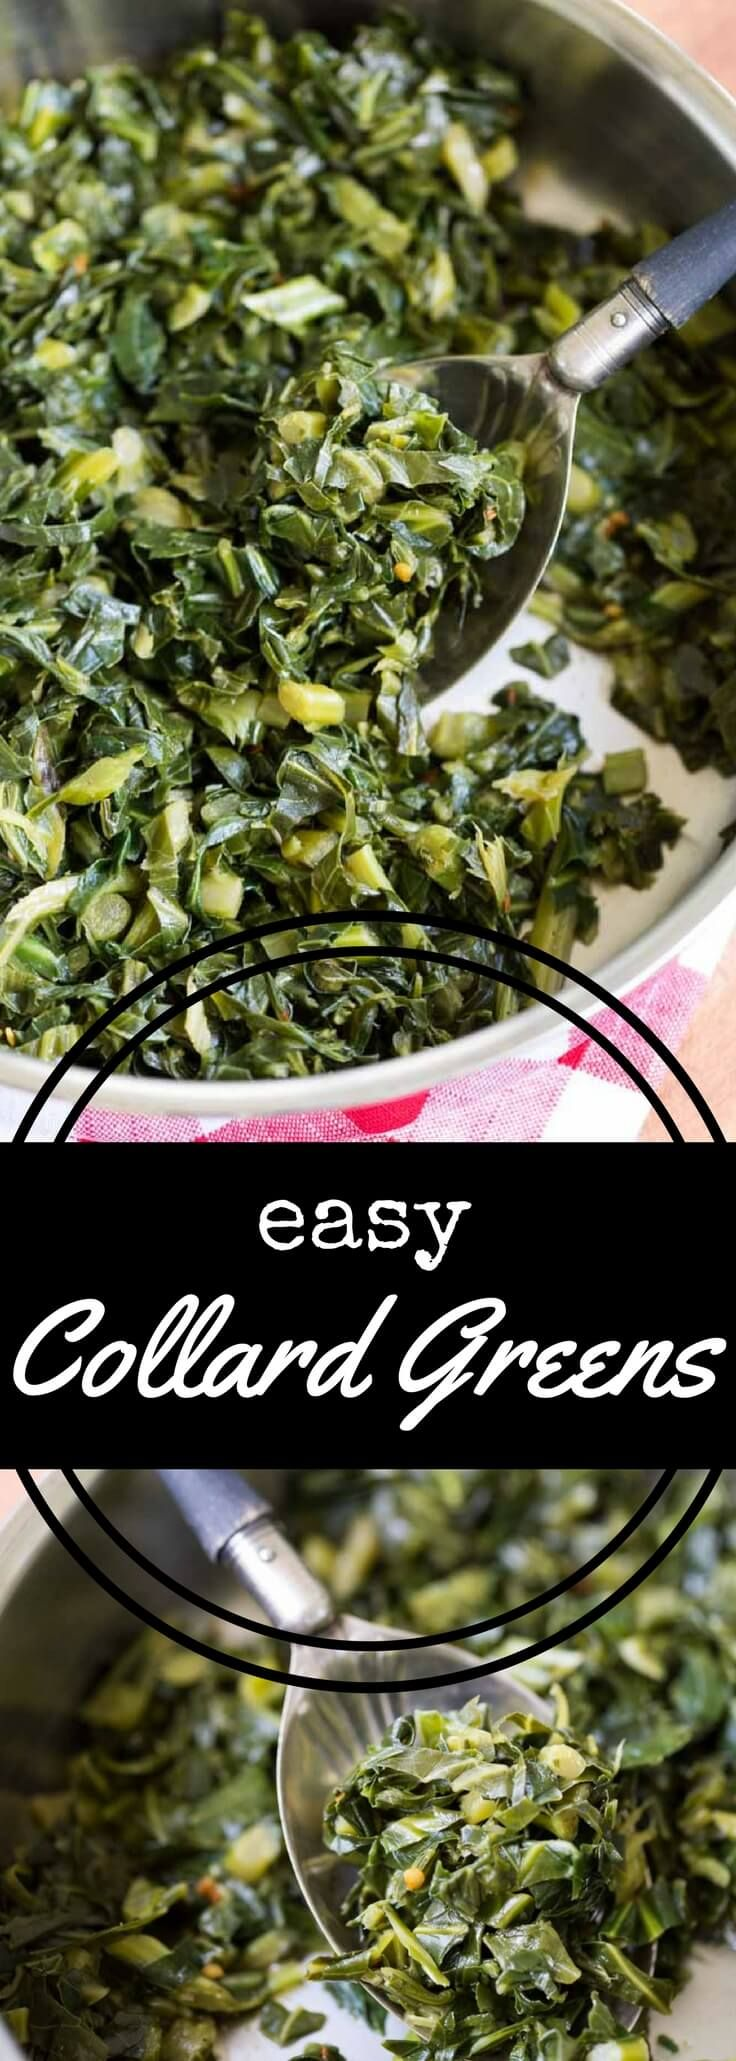 This easy collard greens recipe is simple to make, requiring only a small amount of fat along with chicken broth and a touch of seasoning.  Made with Armour Premium All-Natural Lard from Walmart.  via @recipeforperfec #ArmourPremiumLard #Pmedia #ad